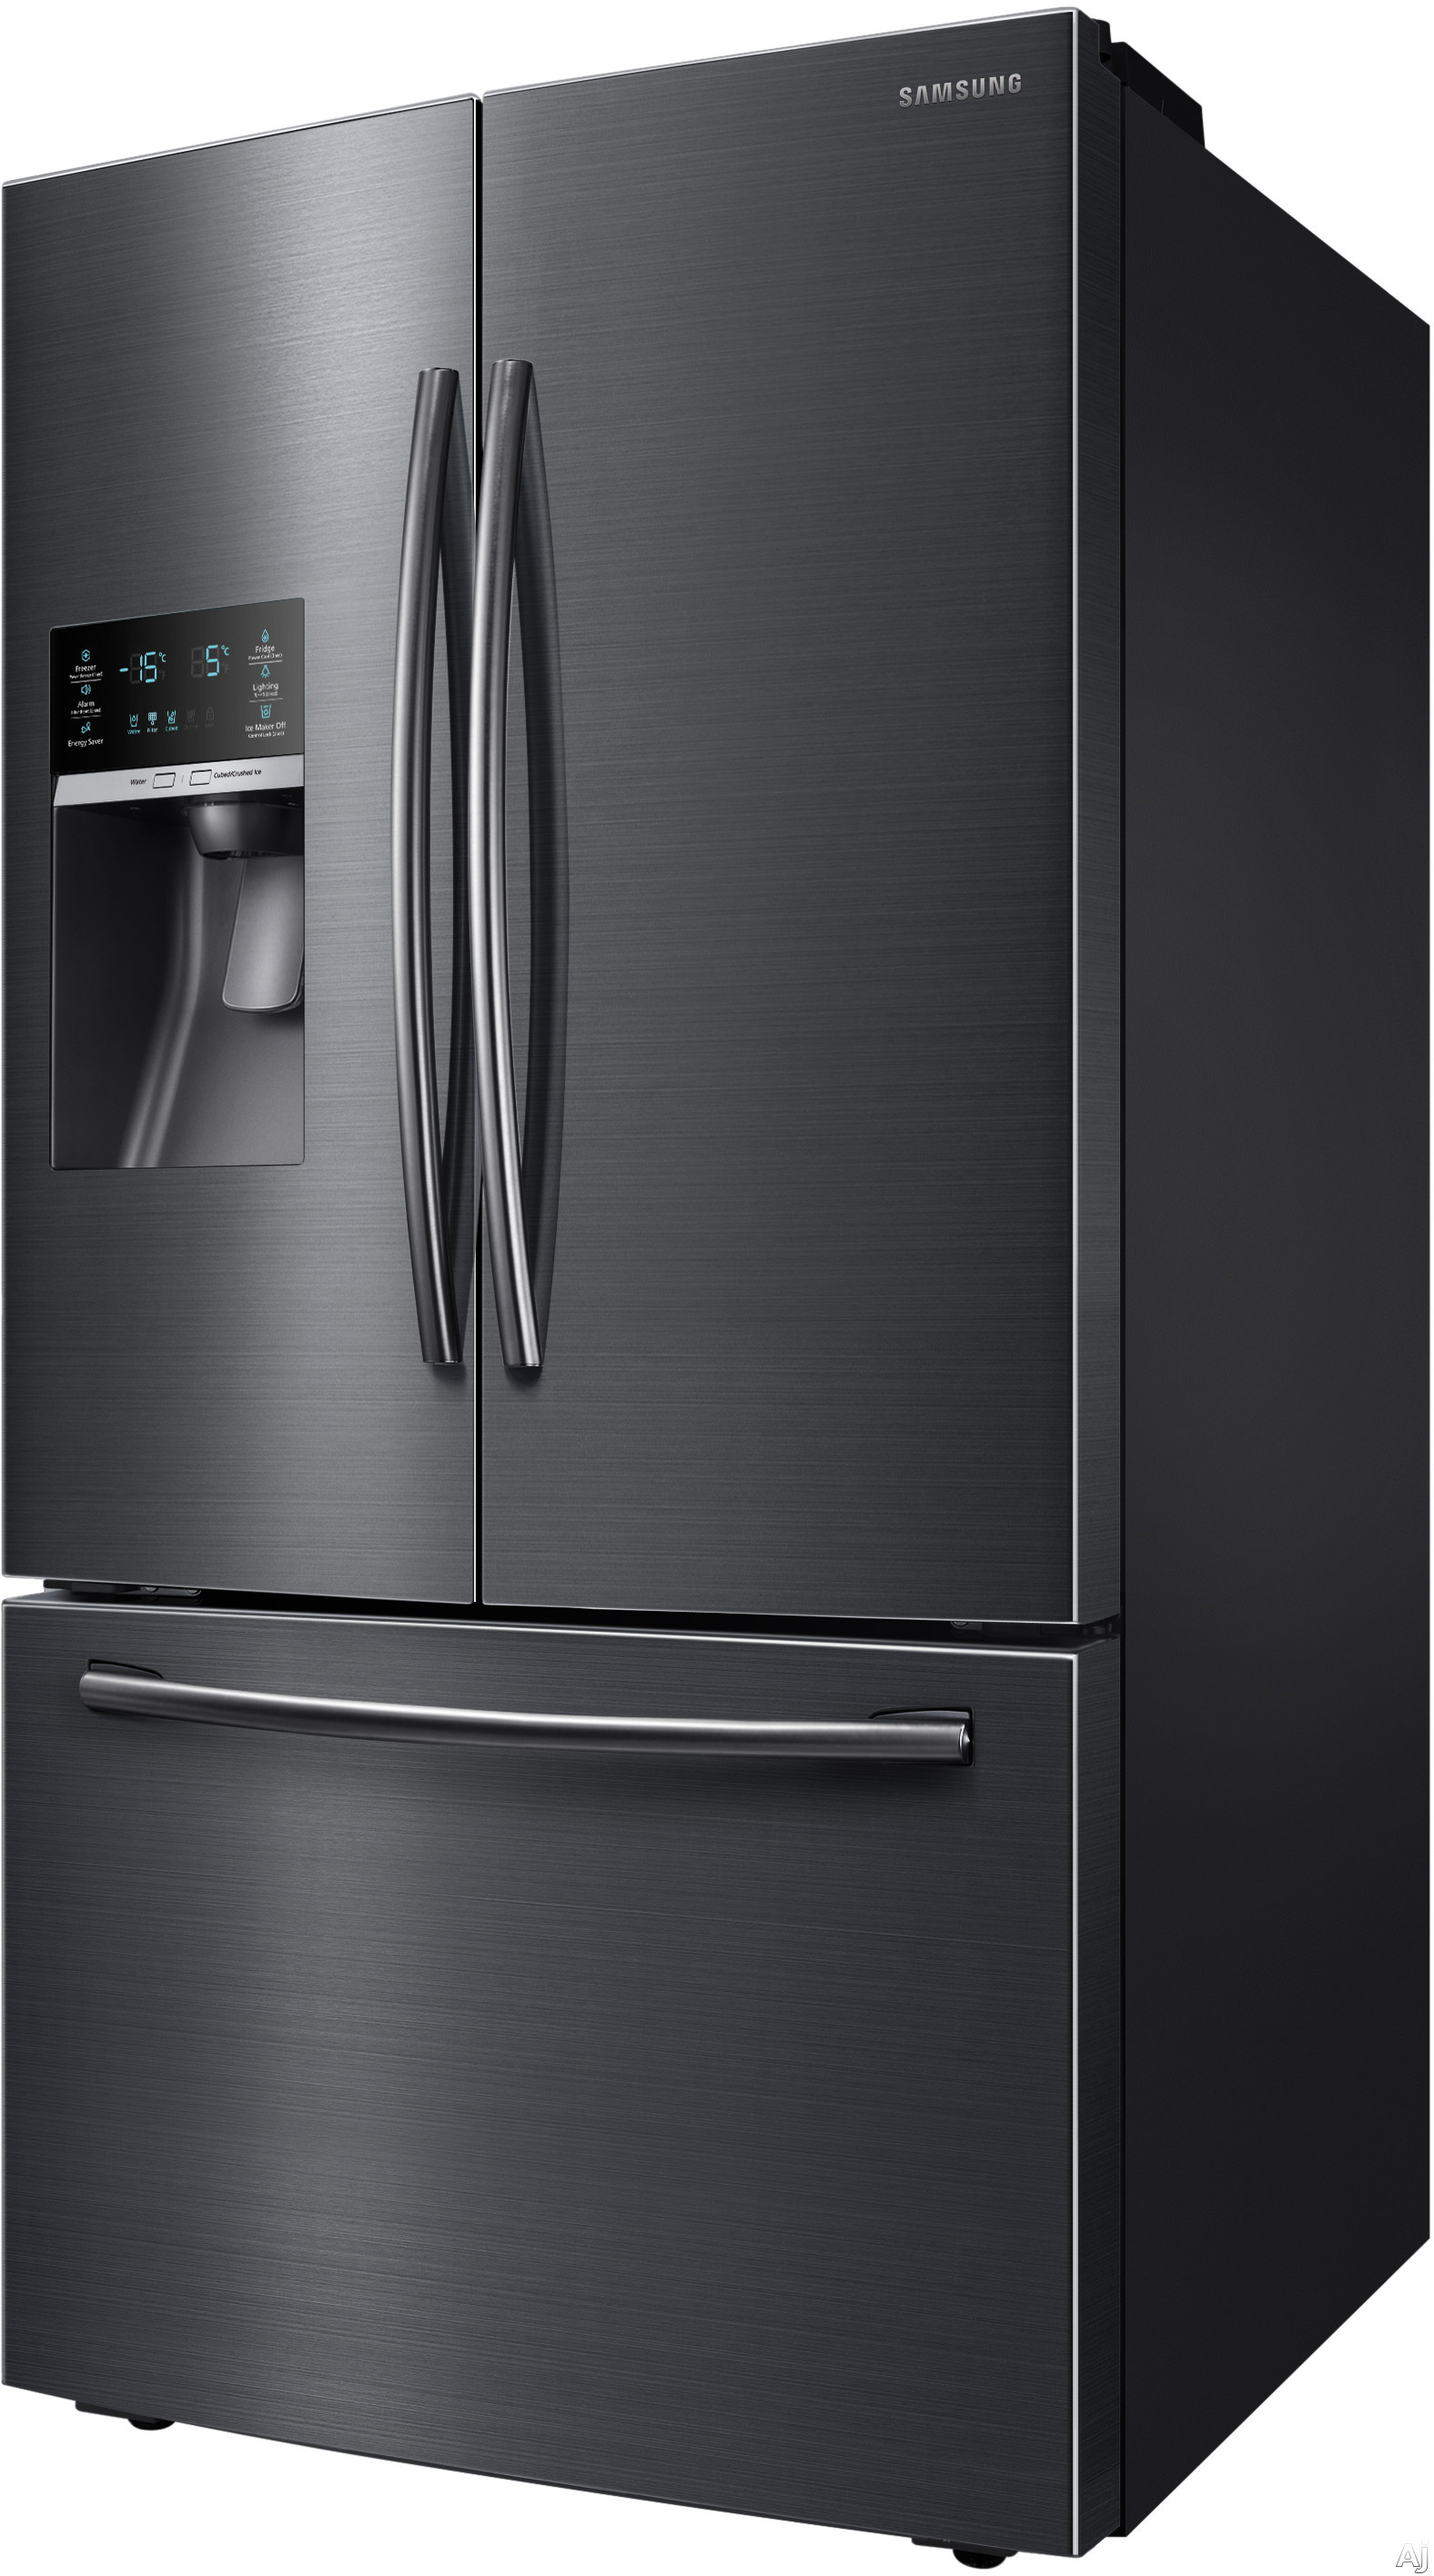 Samsung RF28HFEDBSG 36 Inch French Door Refrigerator with CoolSelect Pantry, Twin Cooling Plus, Ice Master, 28 cu. ft. Capacity, 4 Adjustable Glass Spill-Proof Shelves, LED Lighting, External Water/Ice Dispenser and Energy Star Qualified: Black Stainless Steel